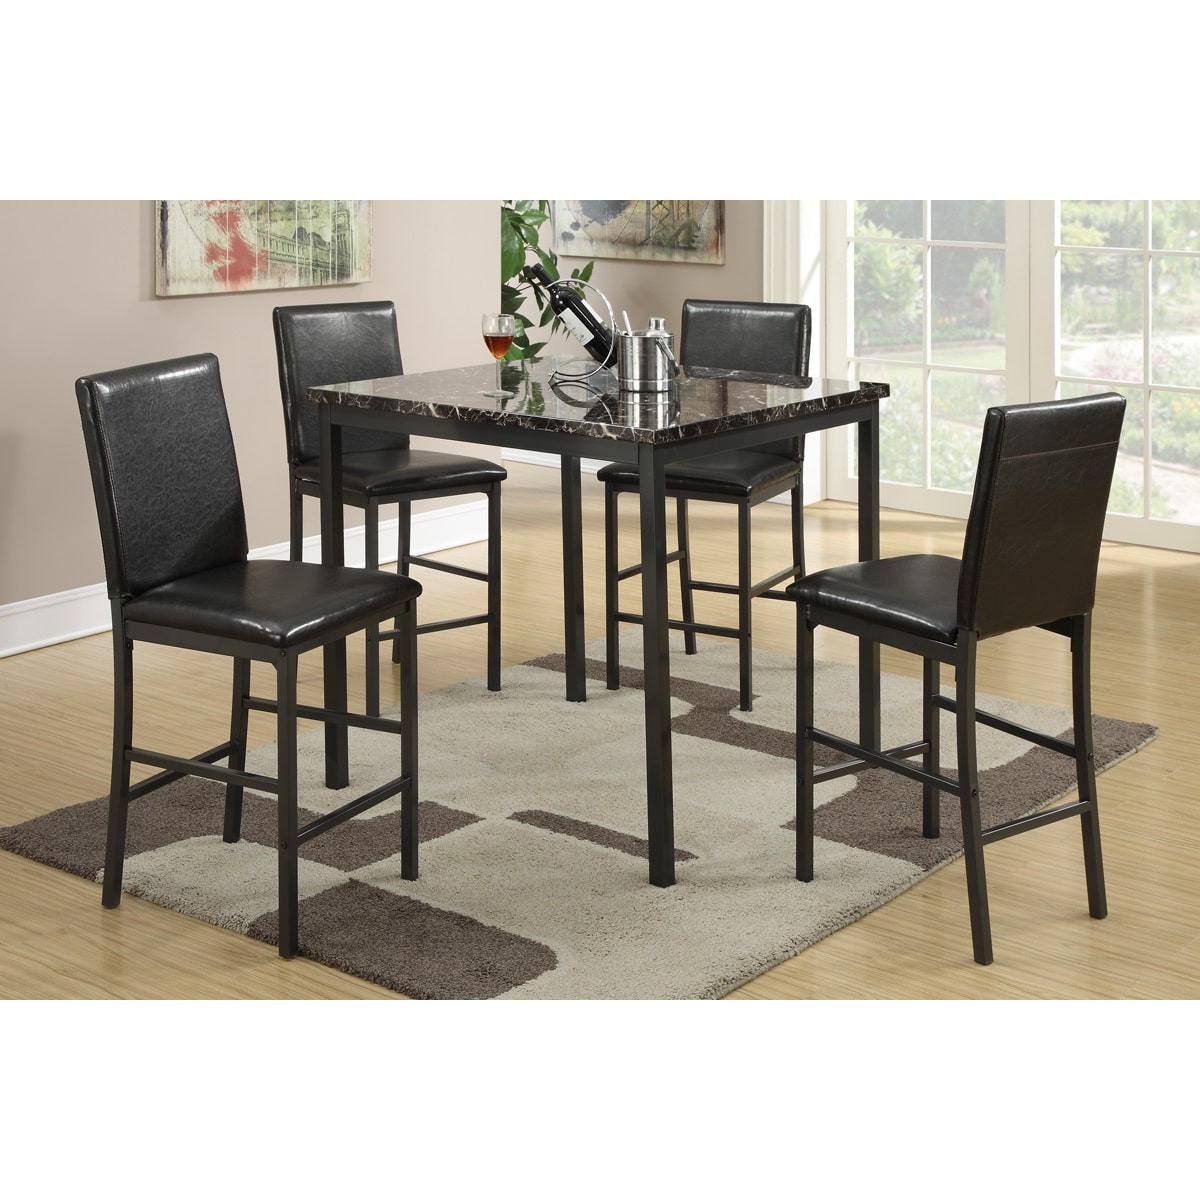 Poundex Brekstad Square Counter Height Dining Set (5 Piece)